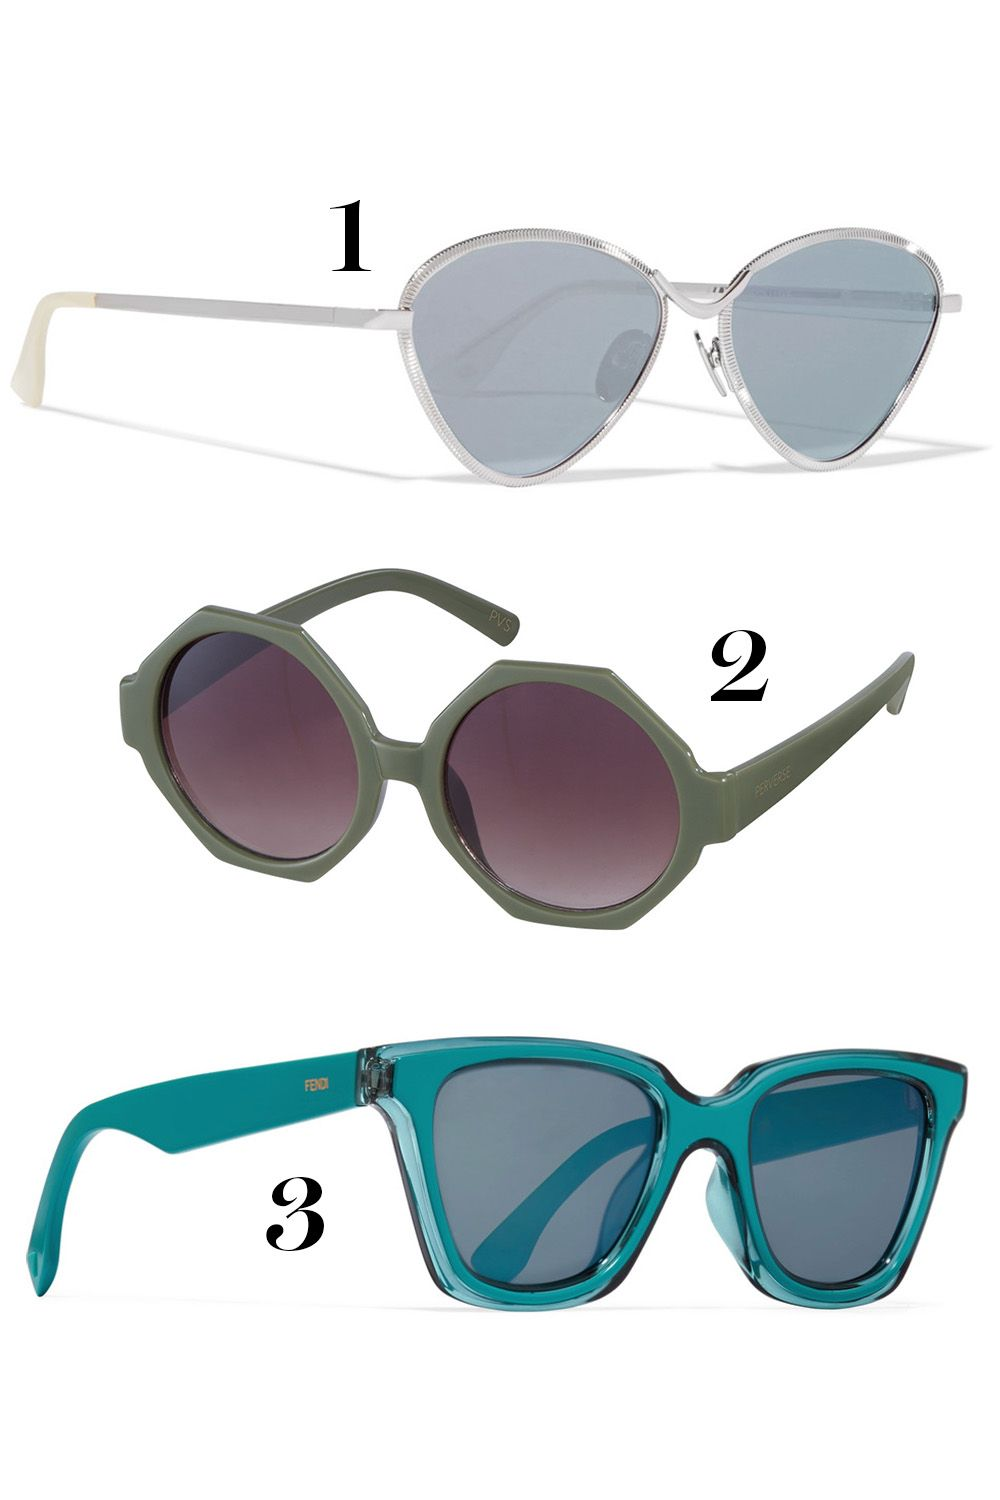 759fe1e676 12 Best Sunglasses for Every Face Shape - How to Choose the Right Frames  for Your Face